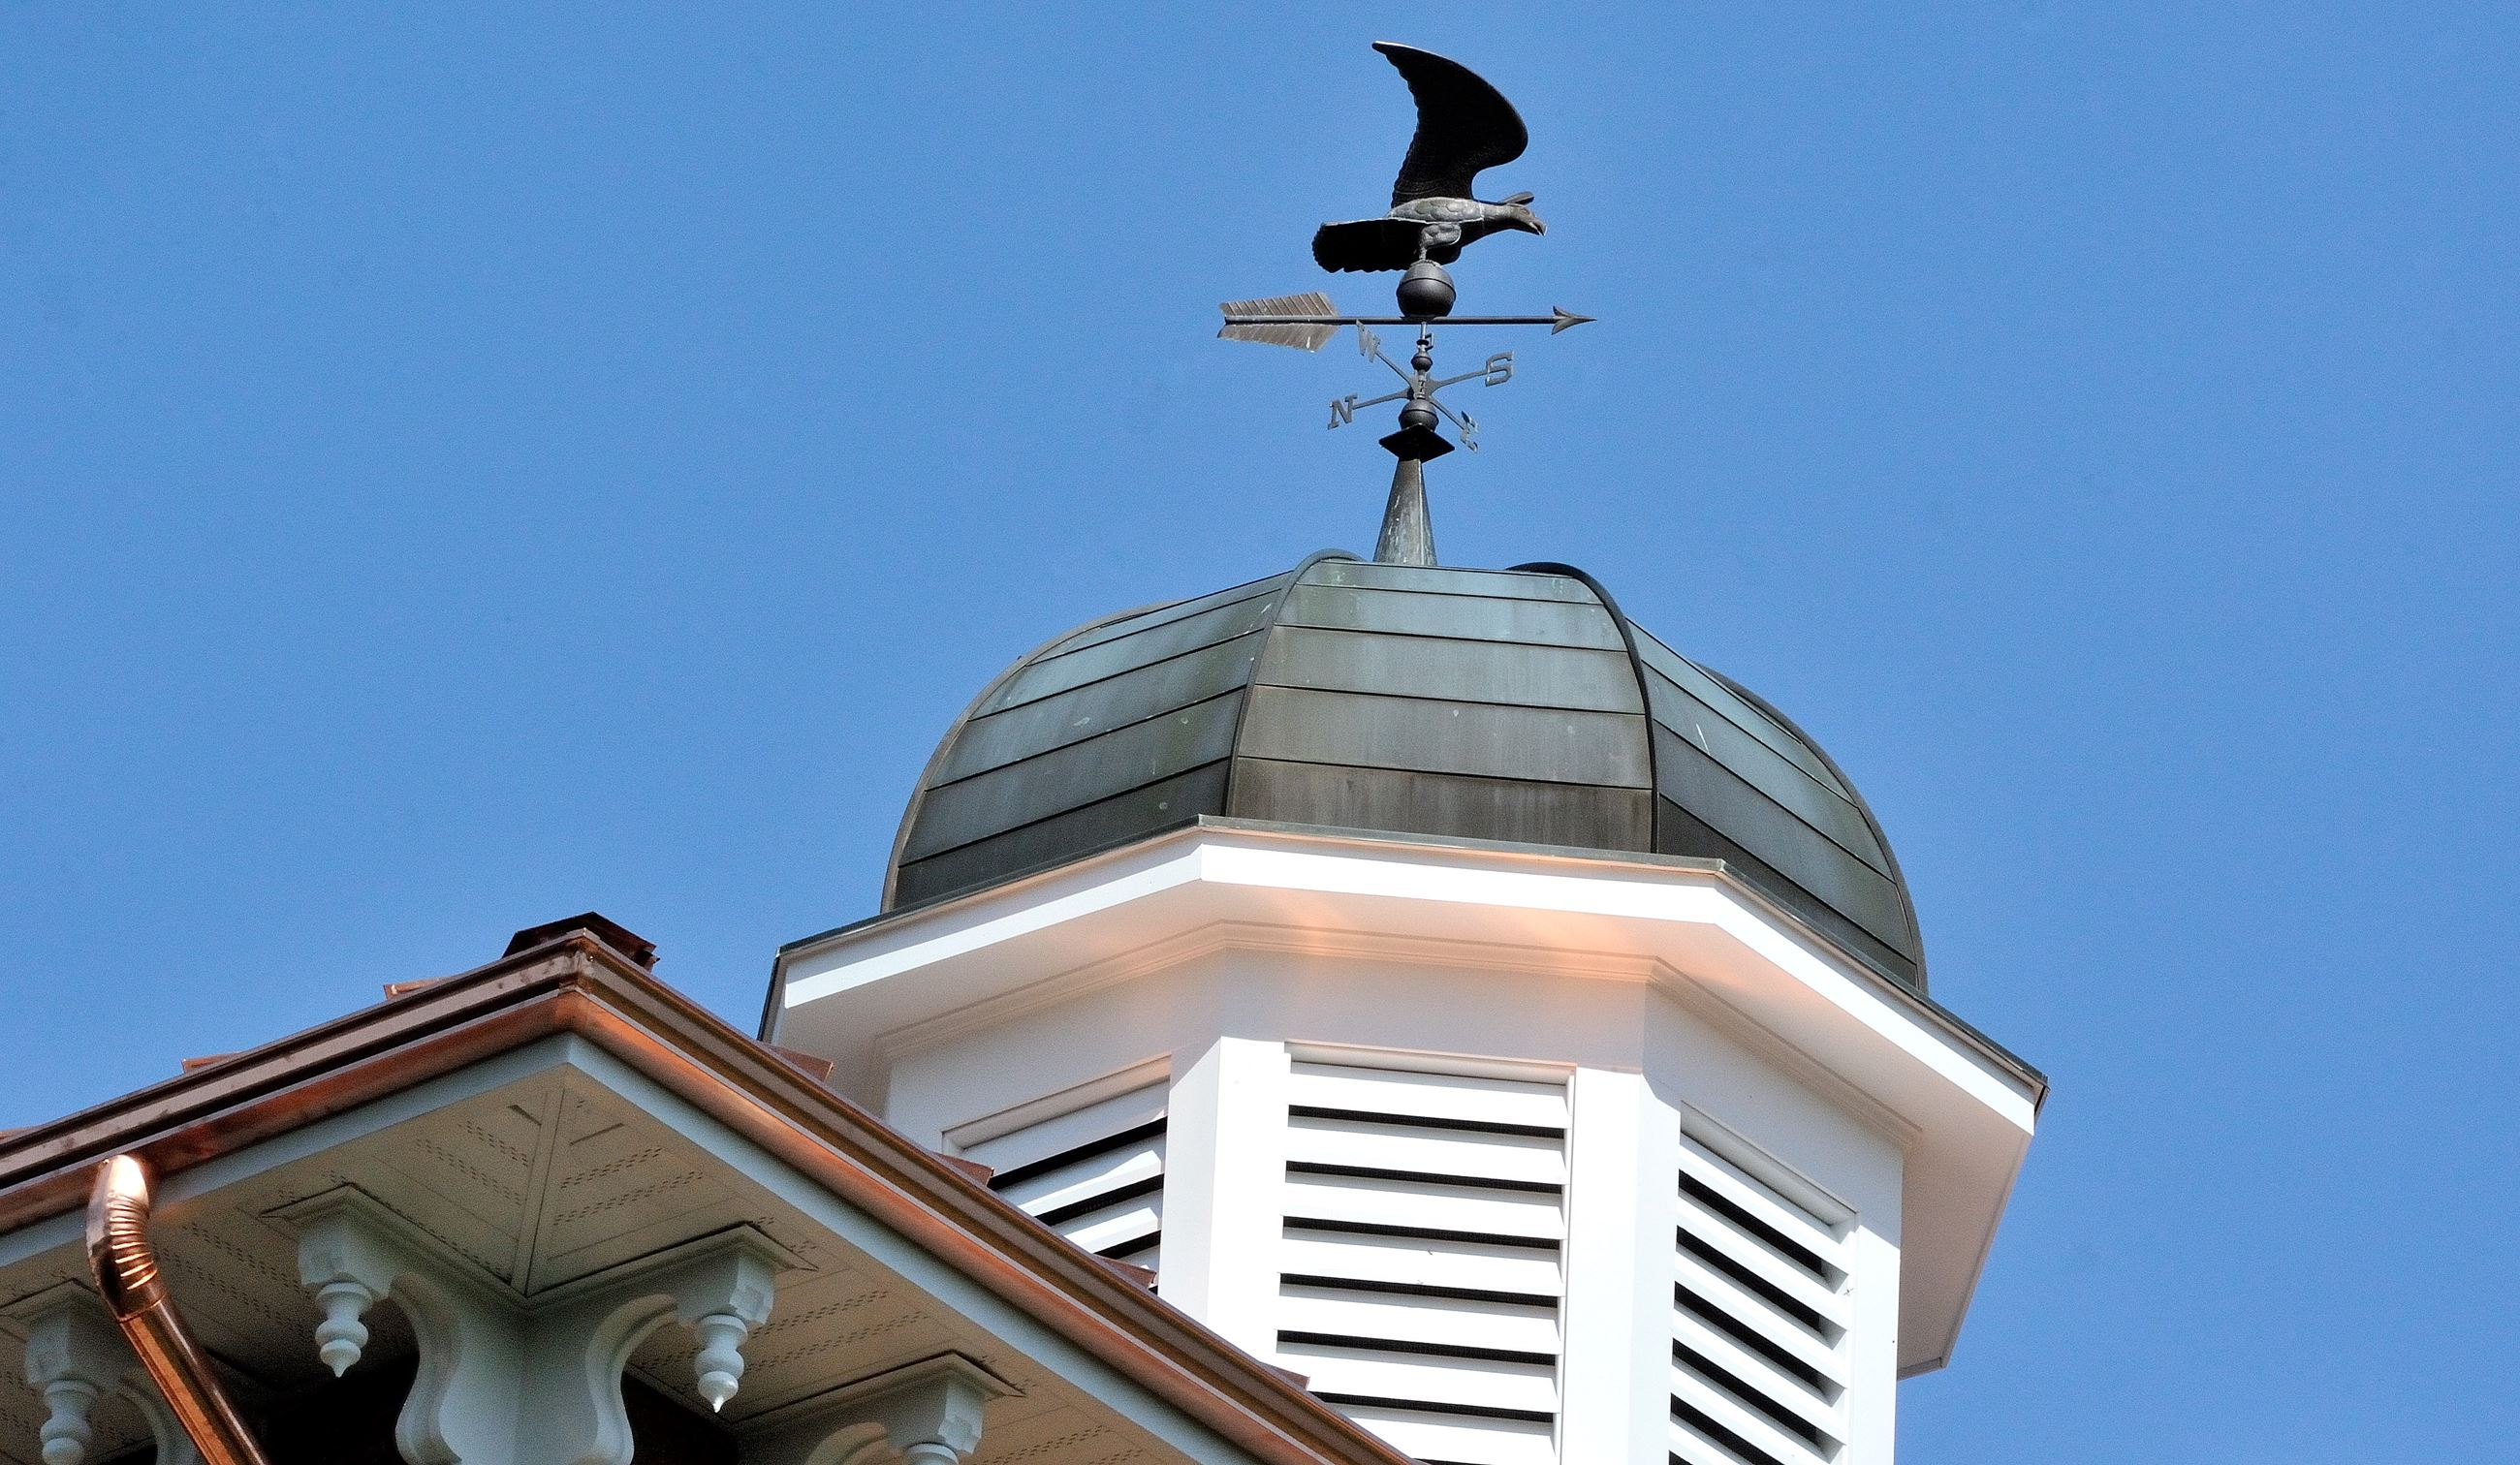 A photo of the cupola on the Town Hall building